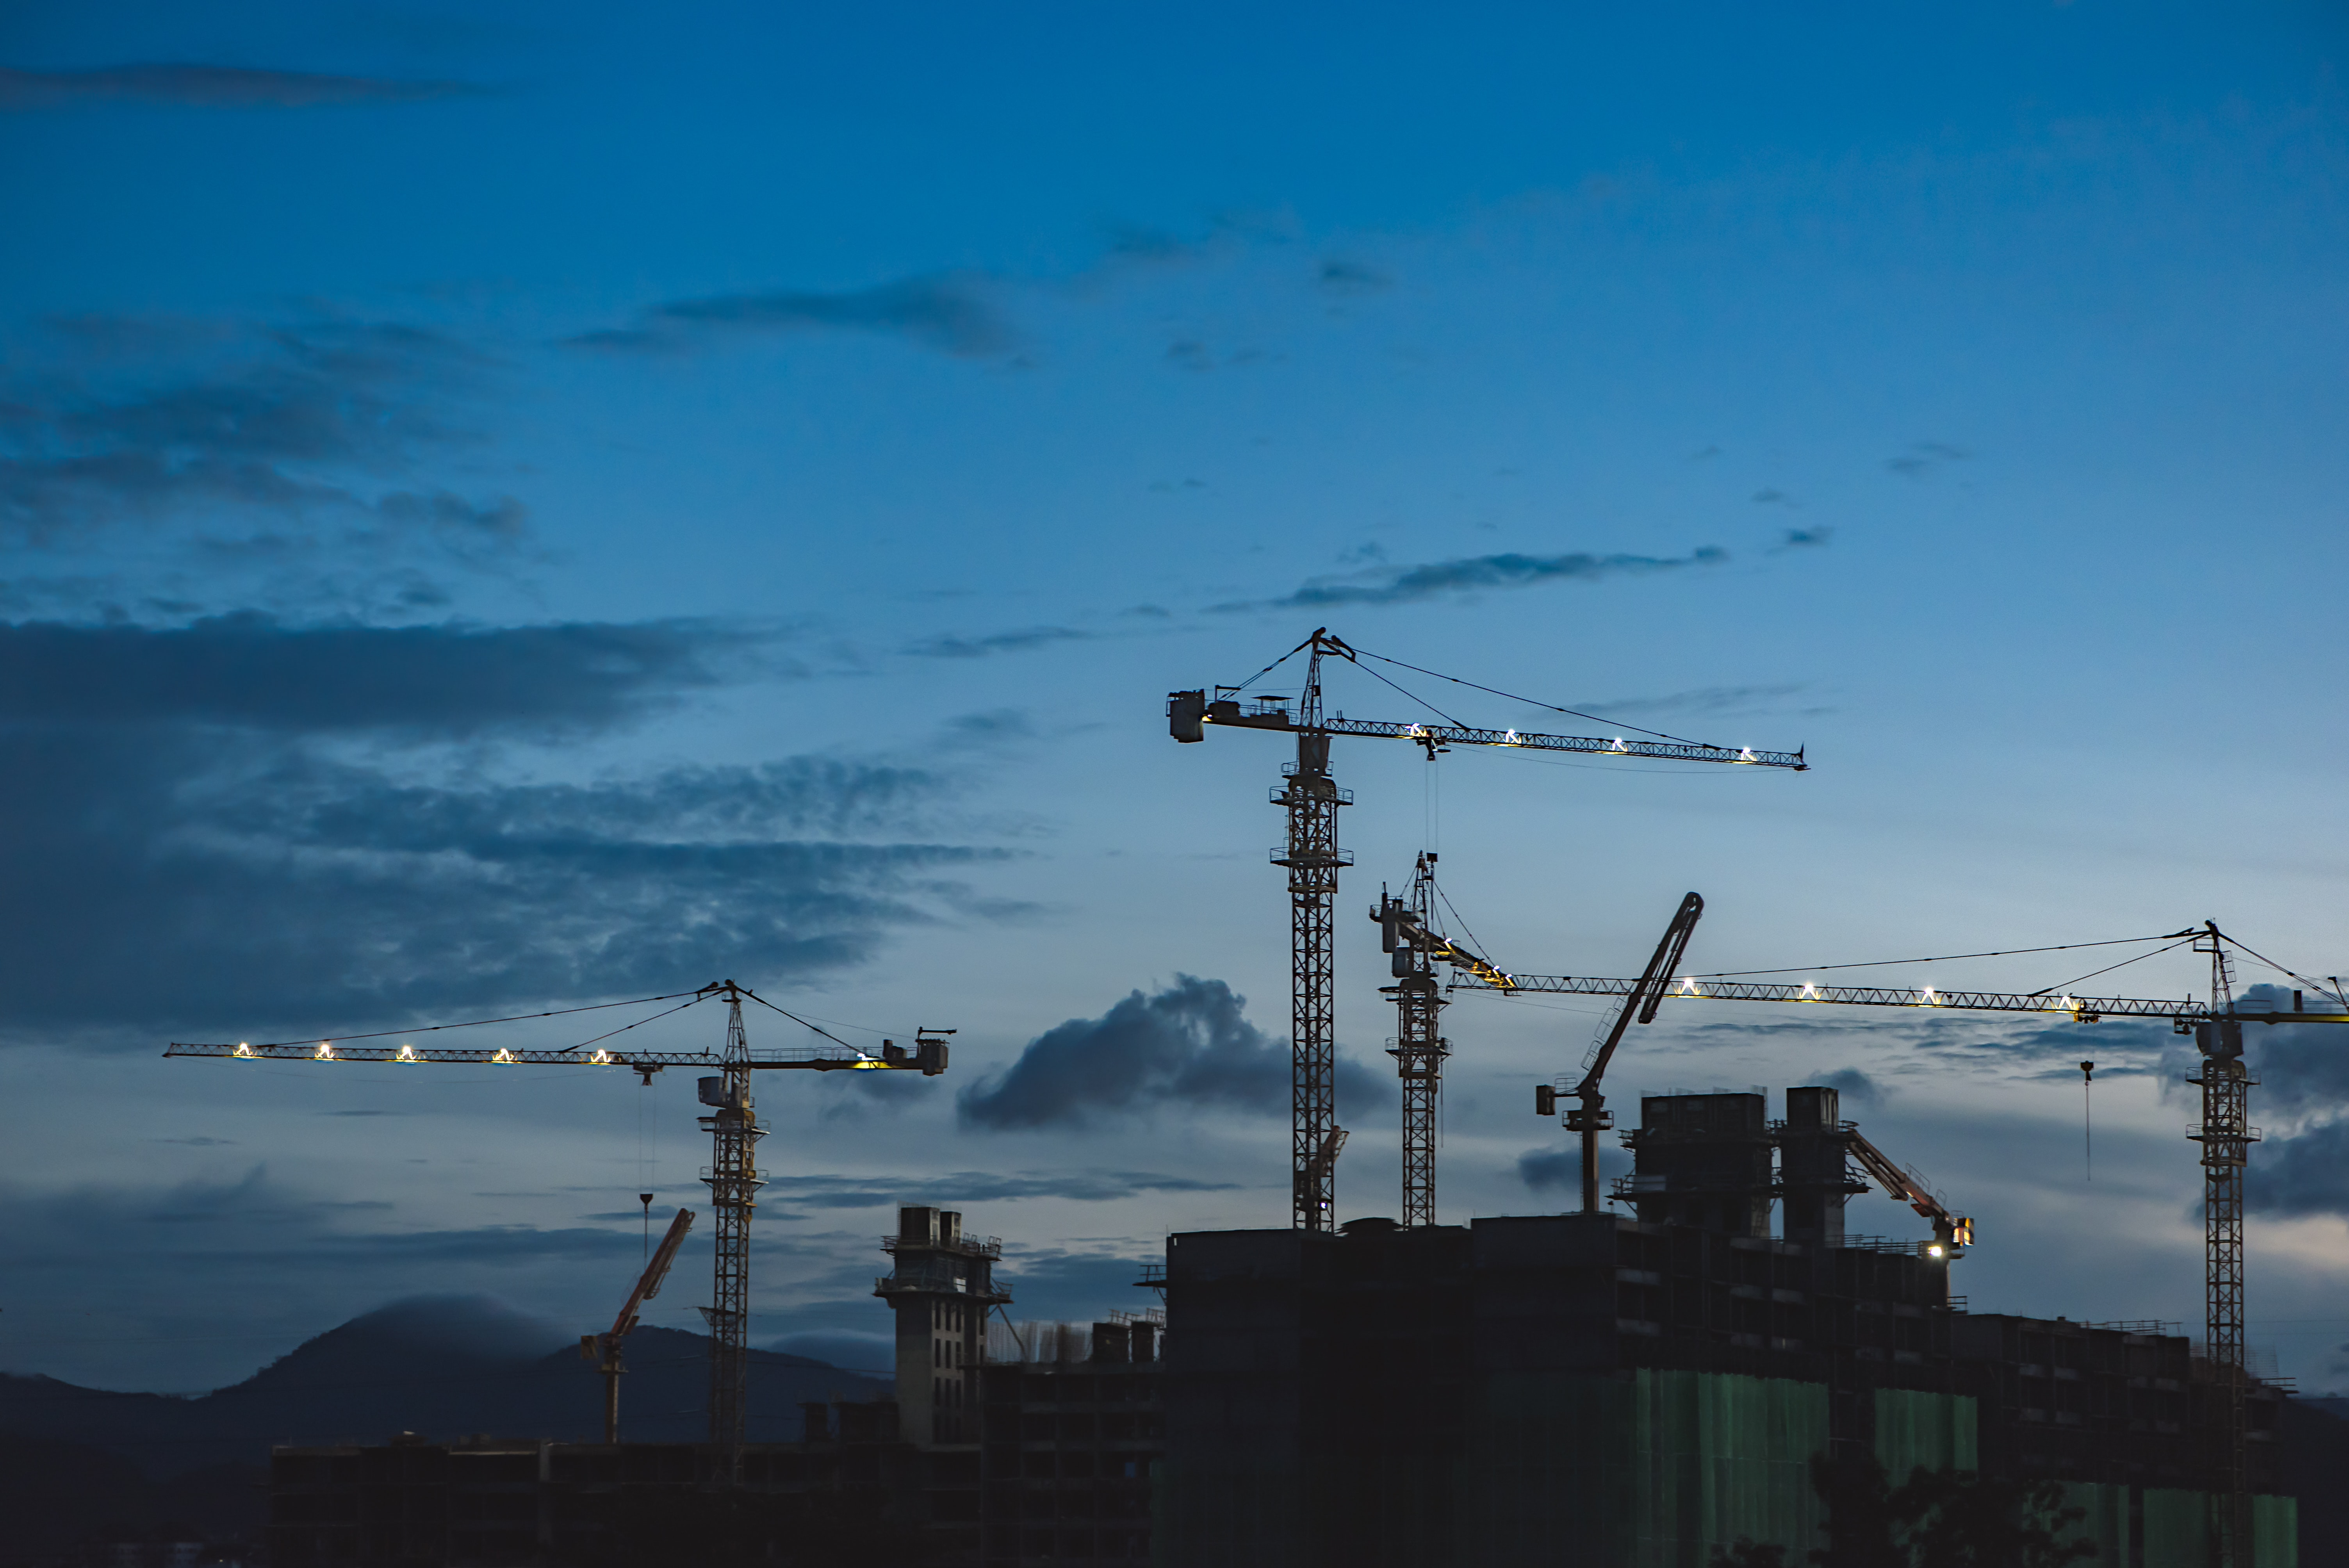 several cranes above the buildings